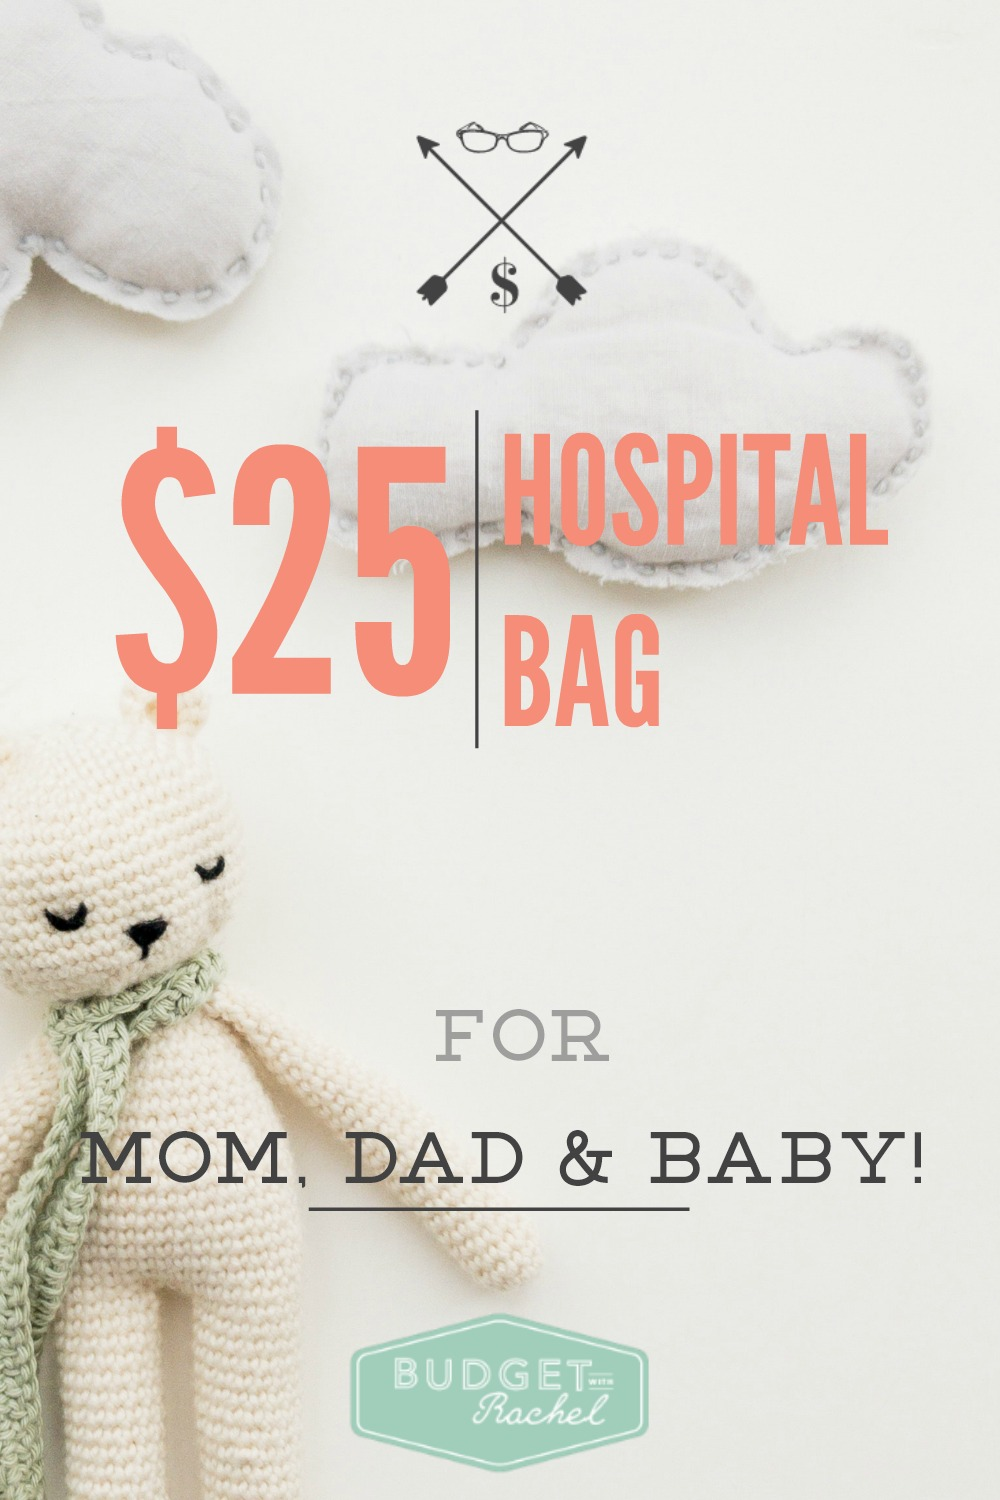 Don't Break the Bank Preparing For Your Water to Break.  Pack a Hospital Bag for Mom, Dad, and Baby for $25. Yes! Love this! So amazing! I have been searching and searching for a super budget friendly way to pack hospital bags for the family and this is it!! Ignore all the other advice out there, this is the best information if you don't want to spend money preparing for your baby's birth. I will be keeping my hospital bags under $25 for sure.